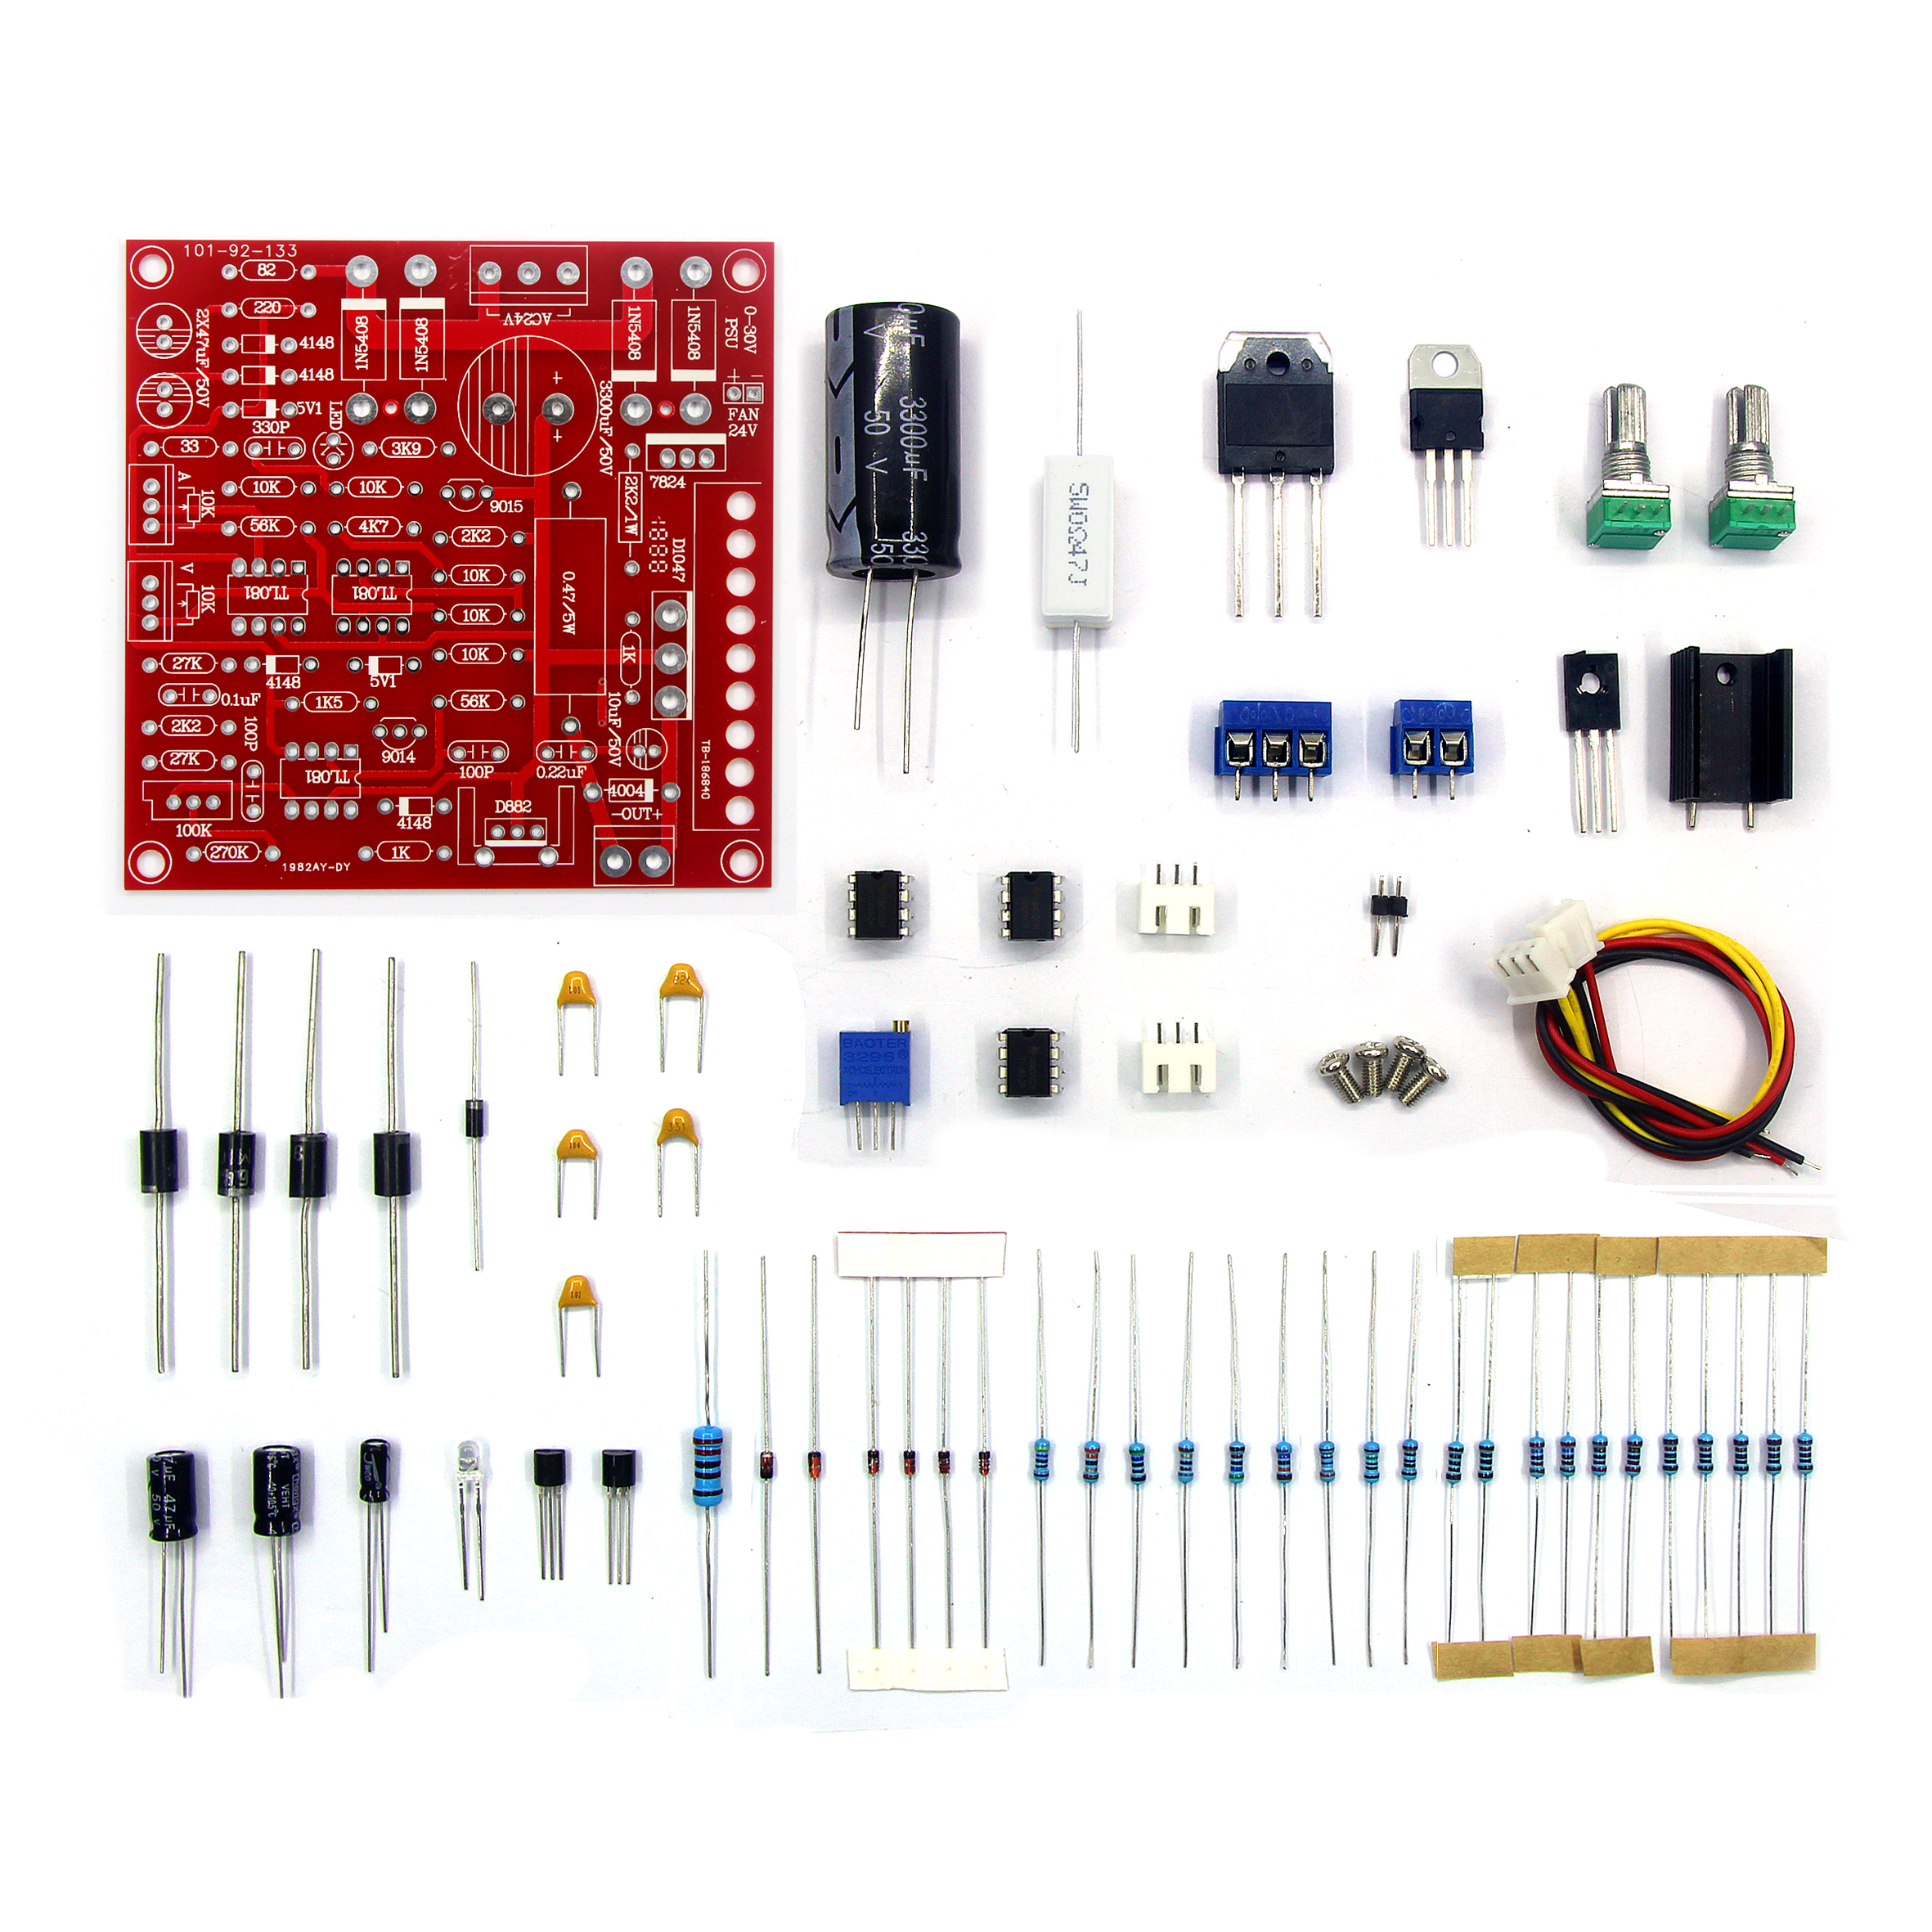 0-30V 2mA-3A DC Regulated Power Supply DIY Kit Continuously Adjustable  Current Limiting Protection For School Education Lab